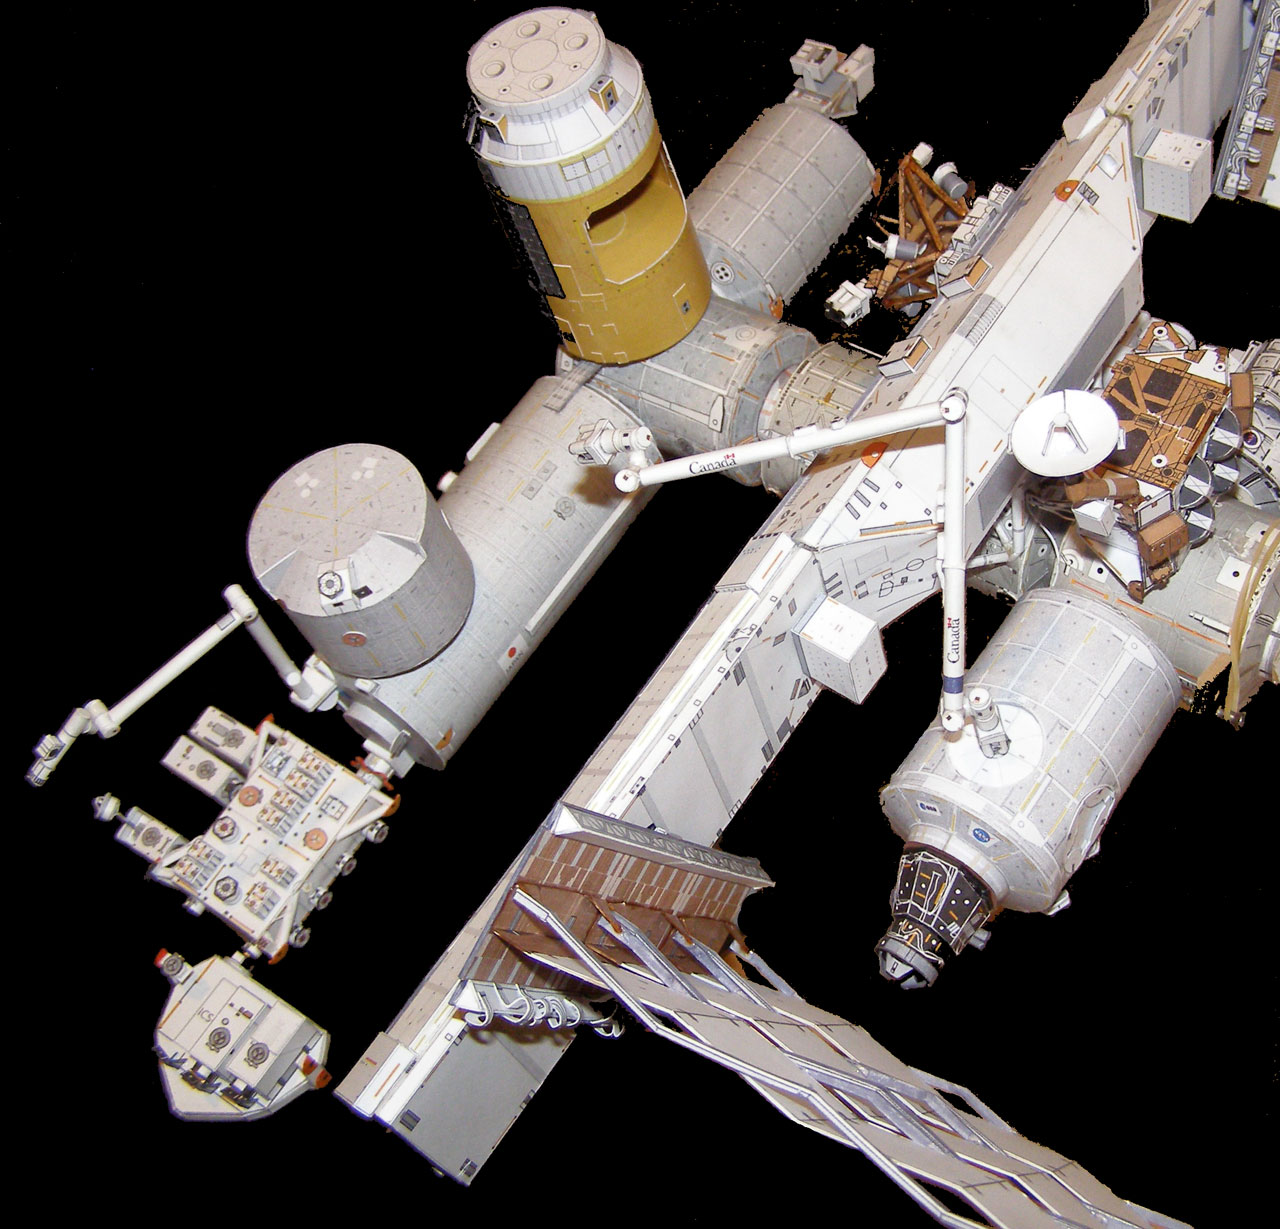 essay on visit to space station Space tourism is space  russia halted orbital space tourism in 2010 due to the increase in the international space station  each for their 10-day visit.